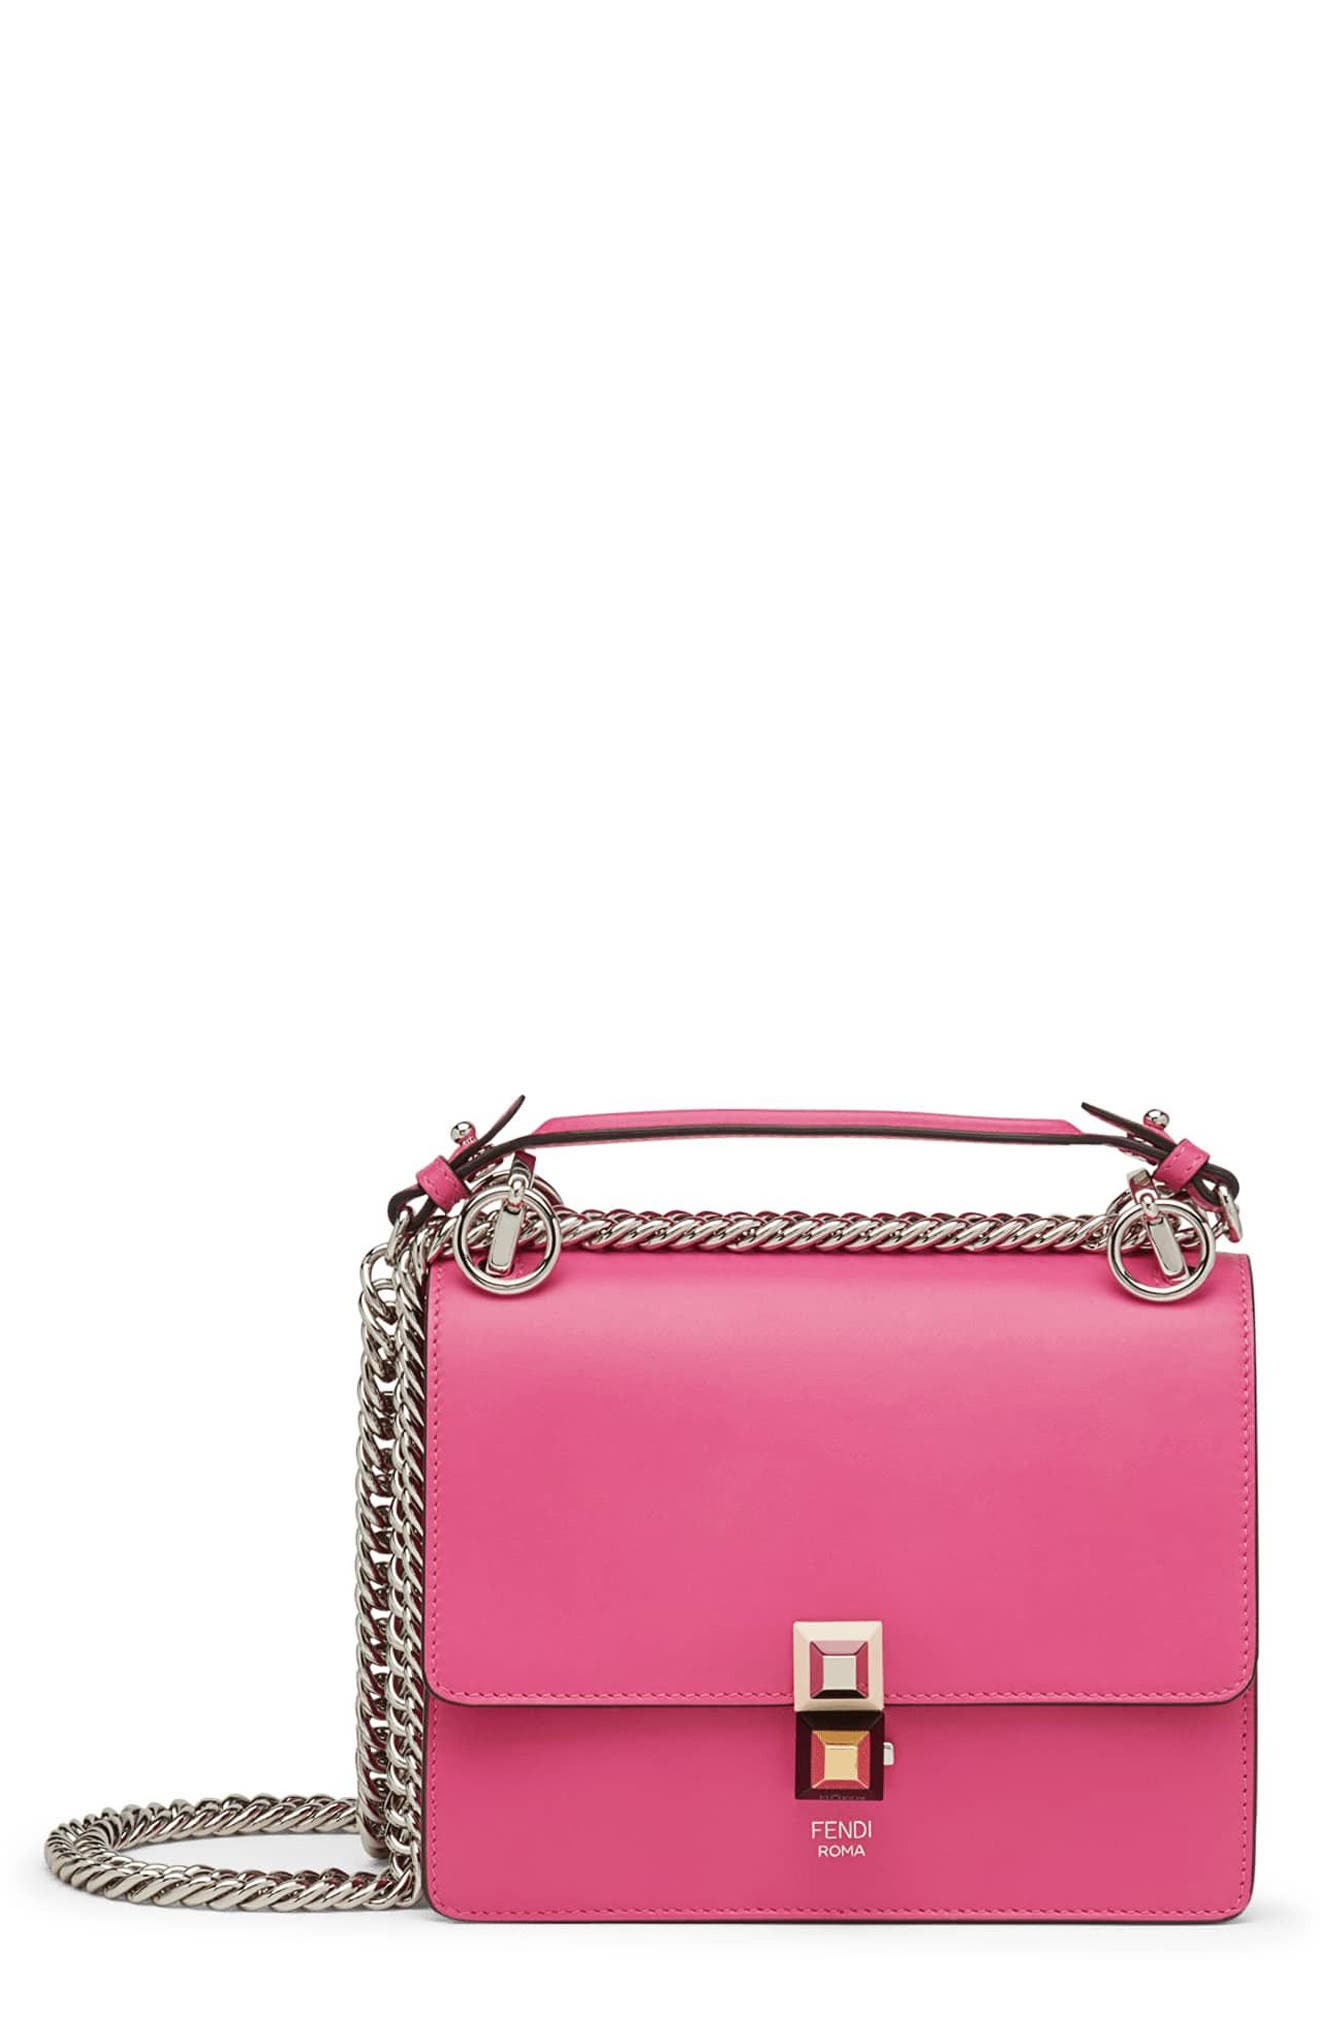 Fendi Small Kan I Leather Shoulder Bag